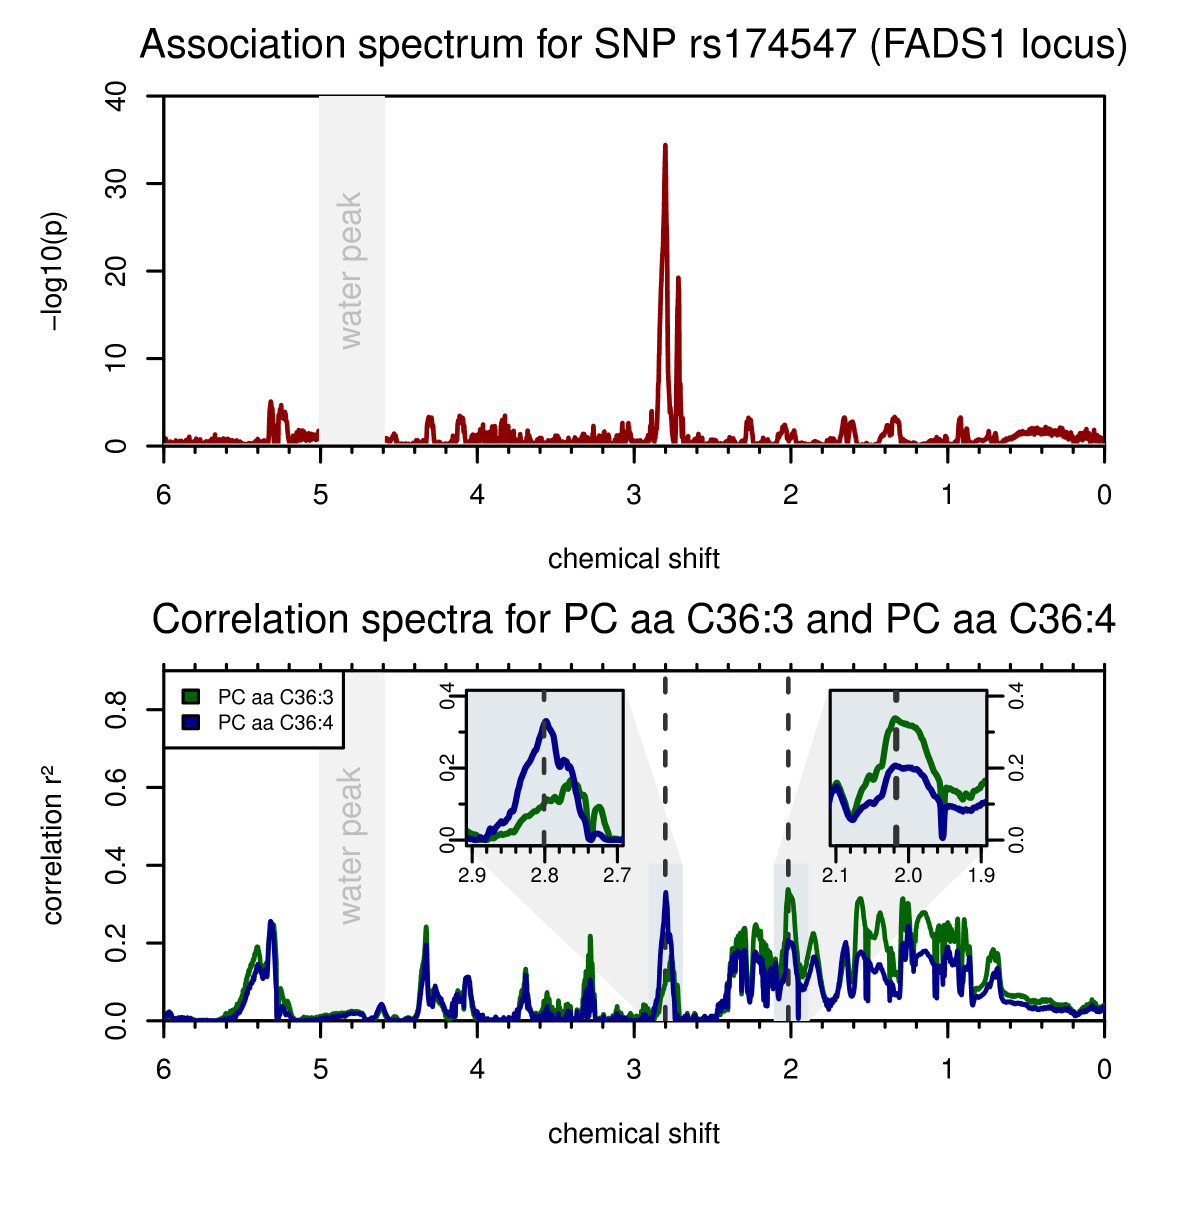 https://static-content.springer.com/image/art%3A10.1186%2Fgm417/MediaObjects/13073_2012_Article_443_Fig2_HTML.jpg